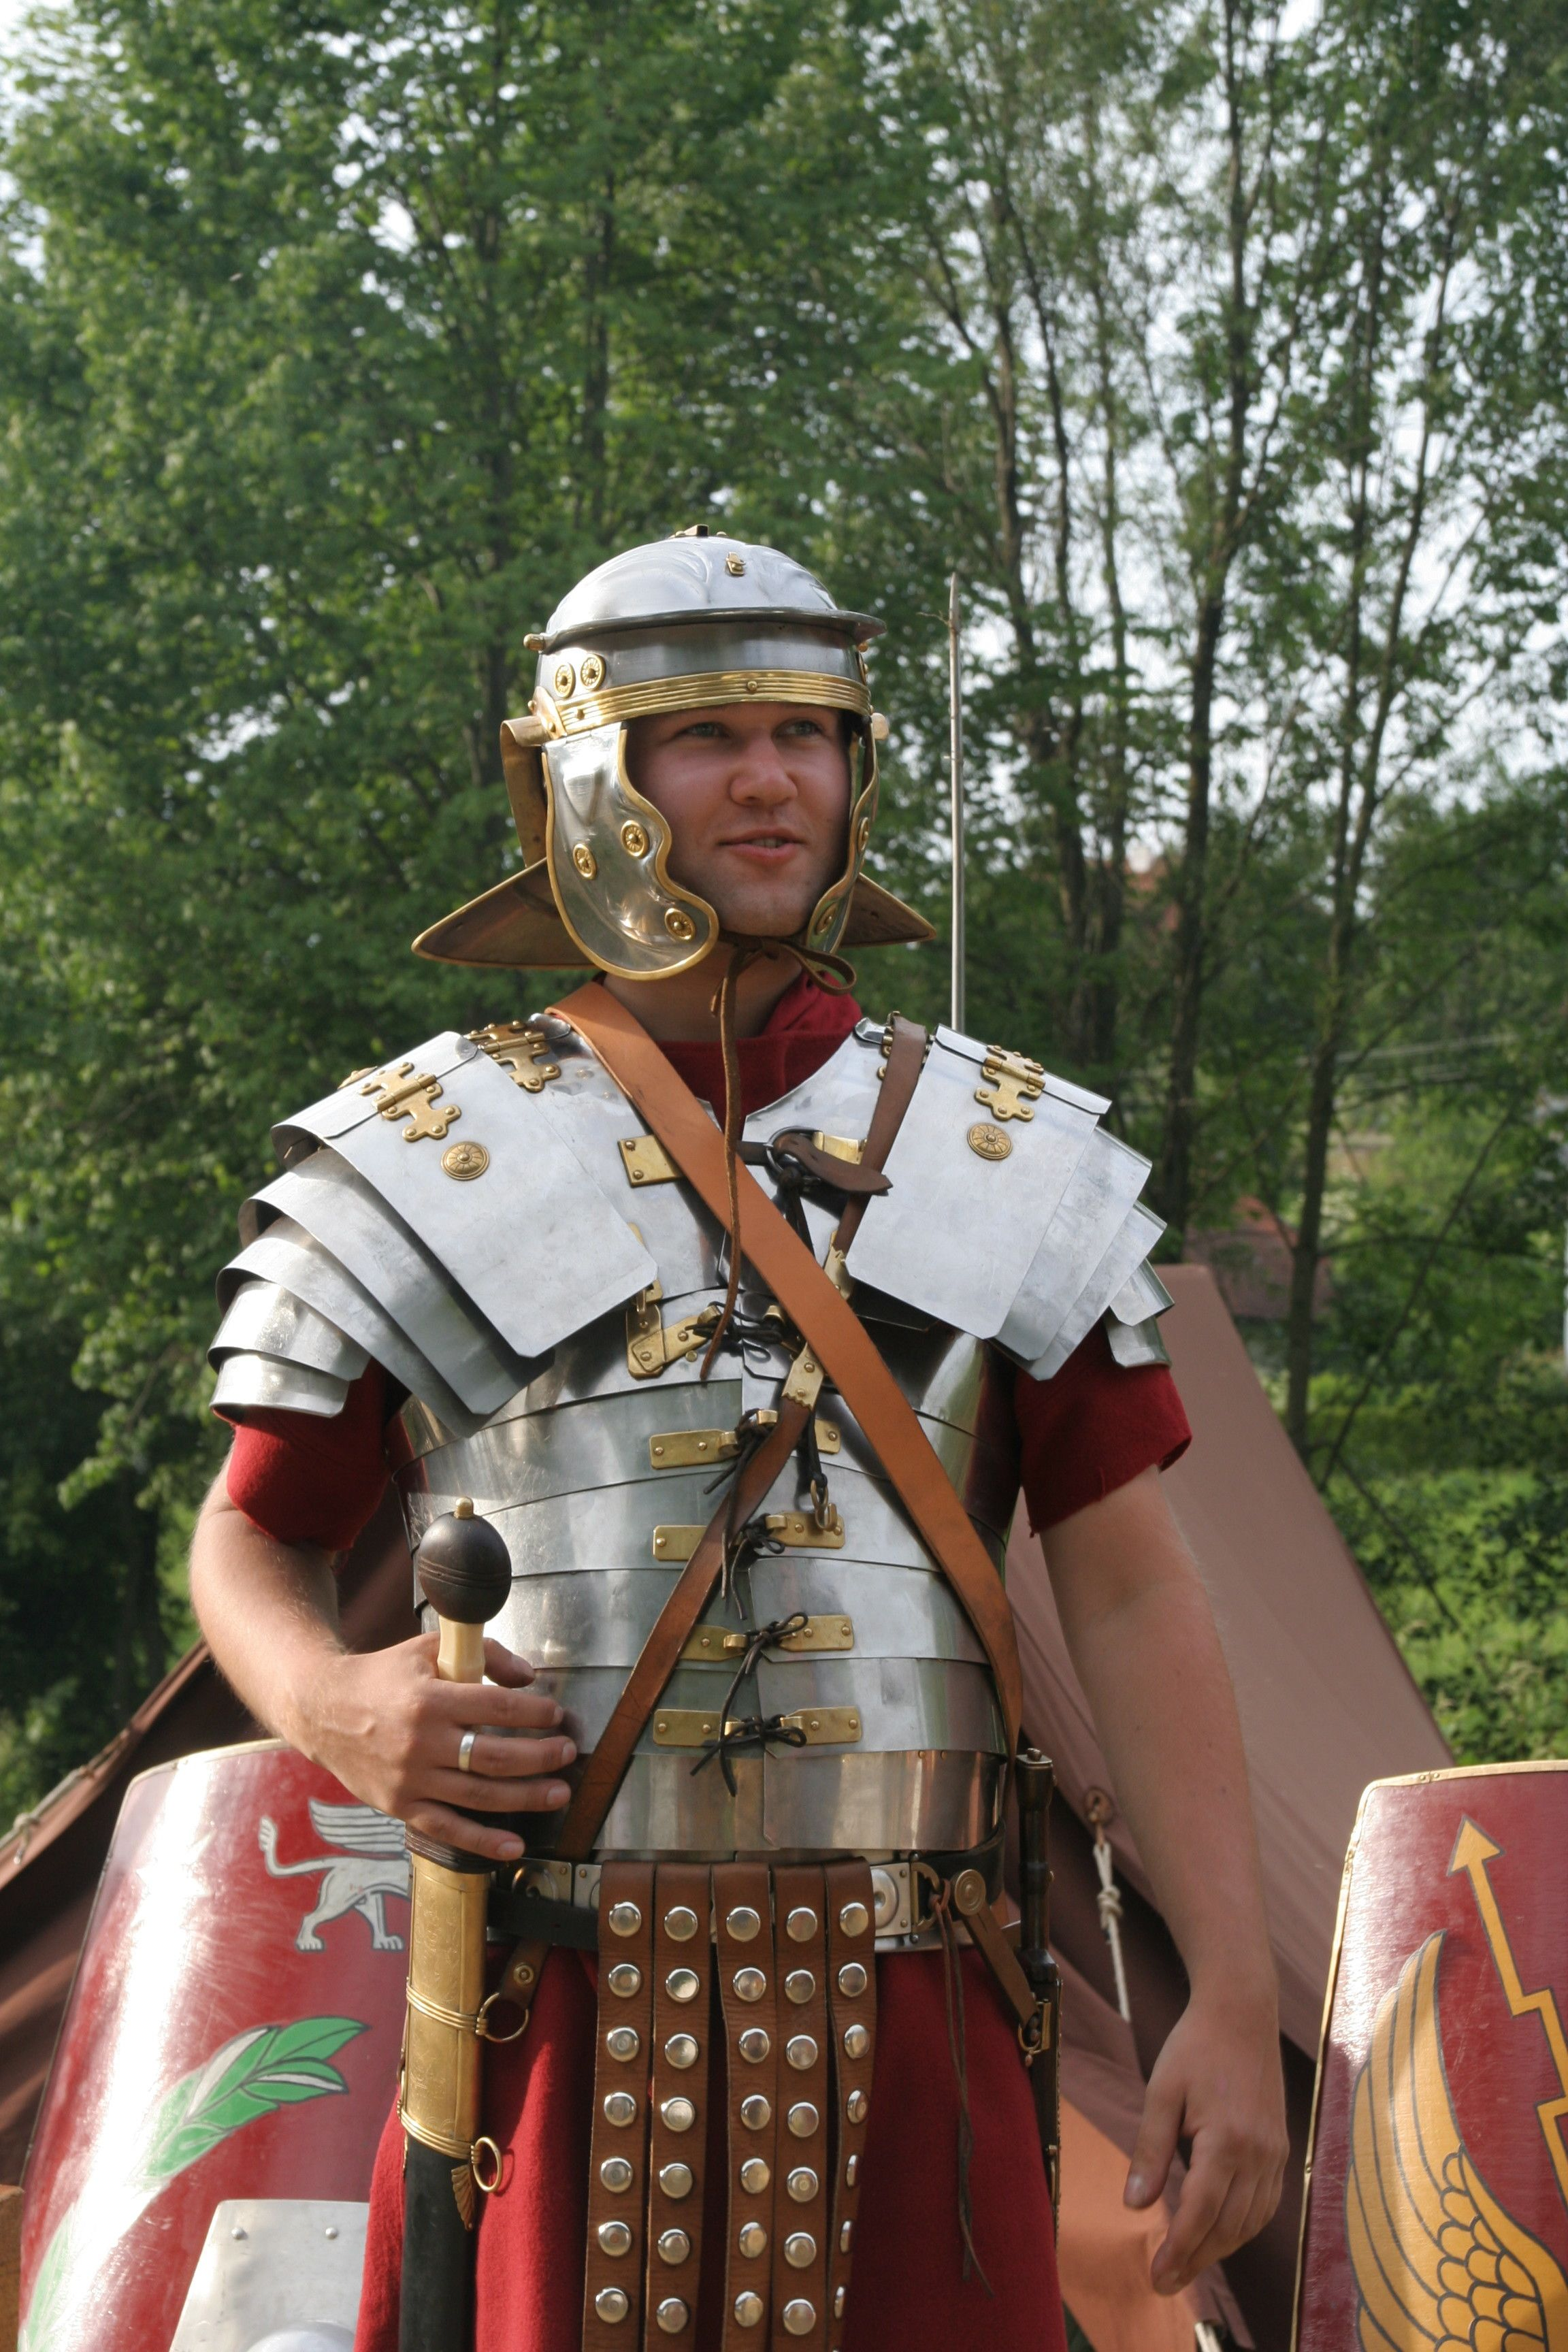 Armour - a re-enactor as a Roman legionary the gladius and pugio on each hip with lorica segmentata armour on the chest